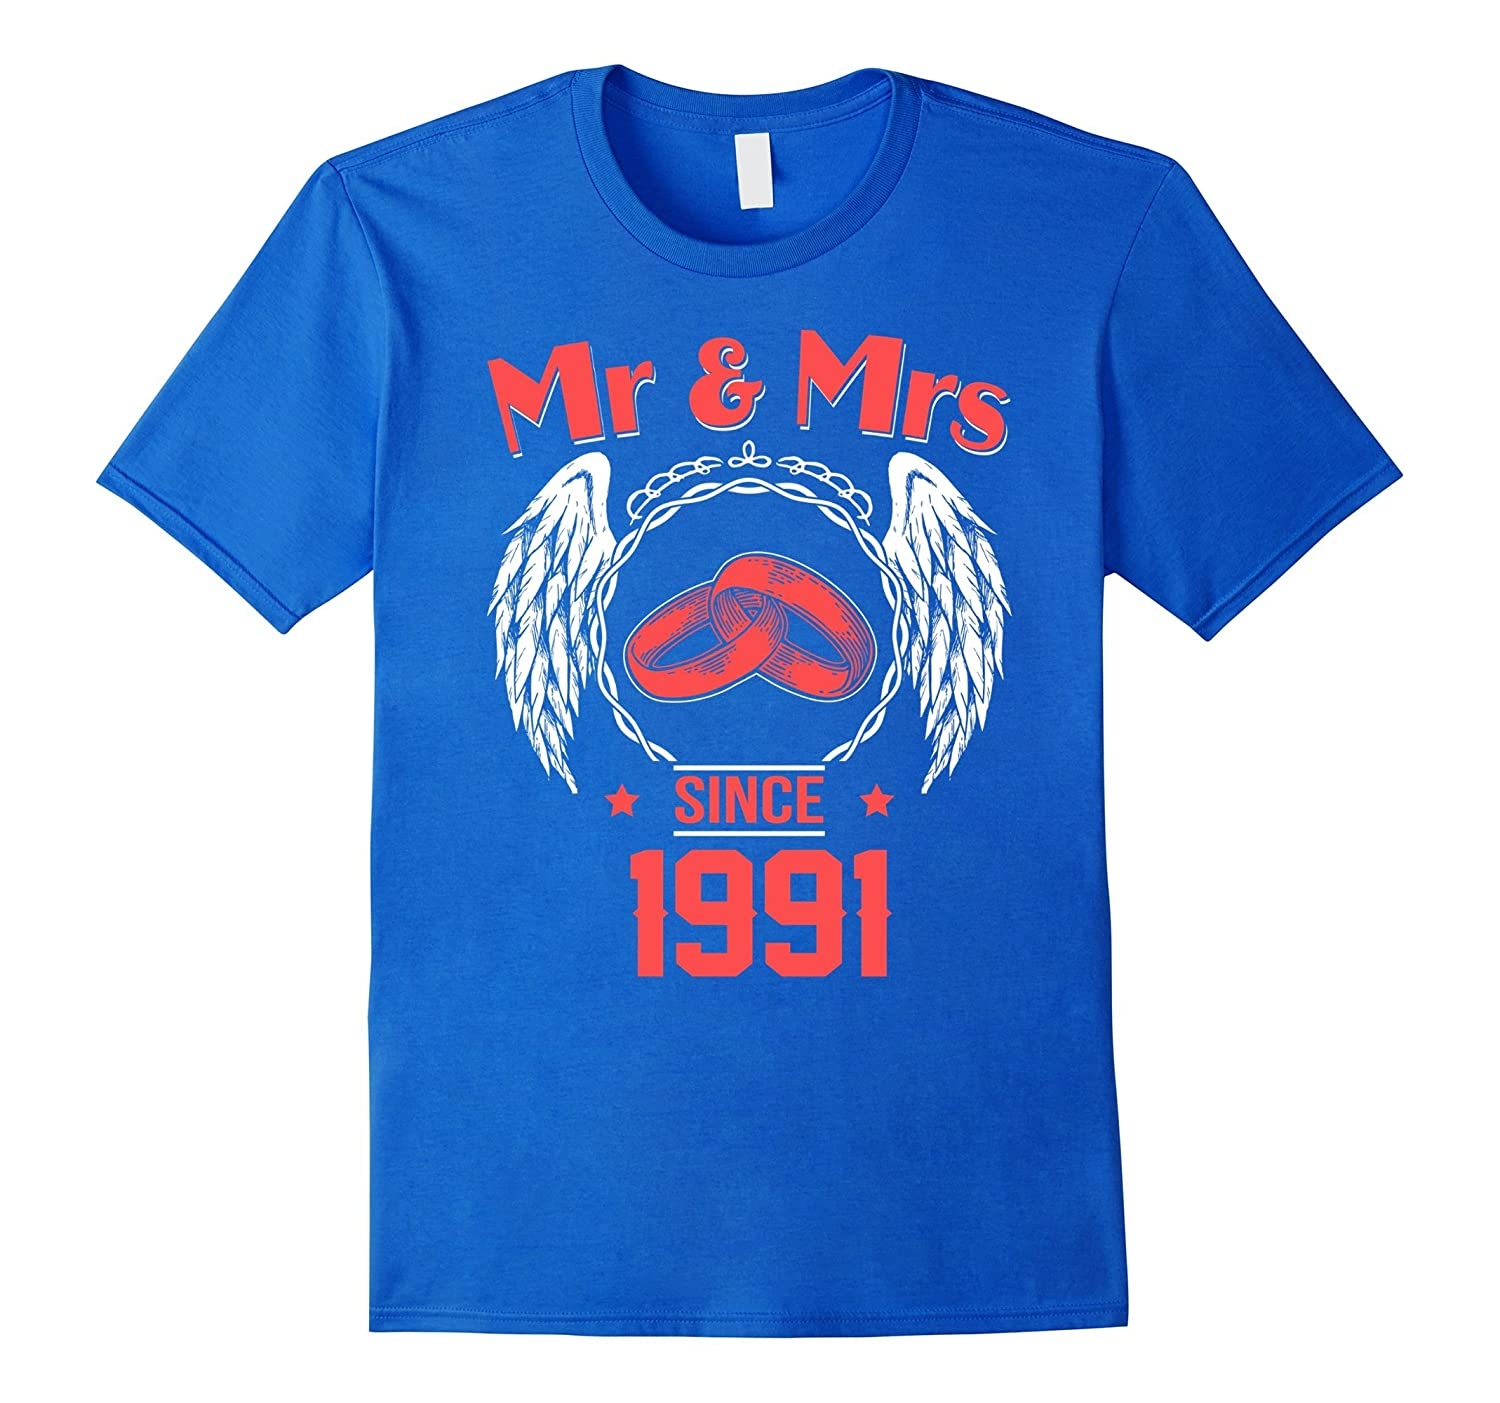 26th Wedding Anniversary Gifts T Shirts For Husband For Wife Pl